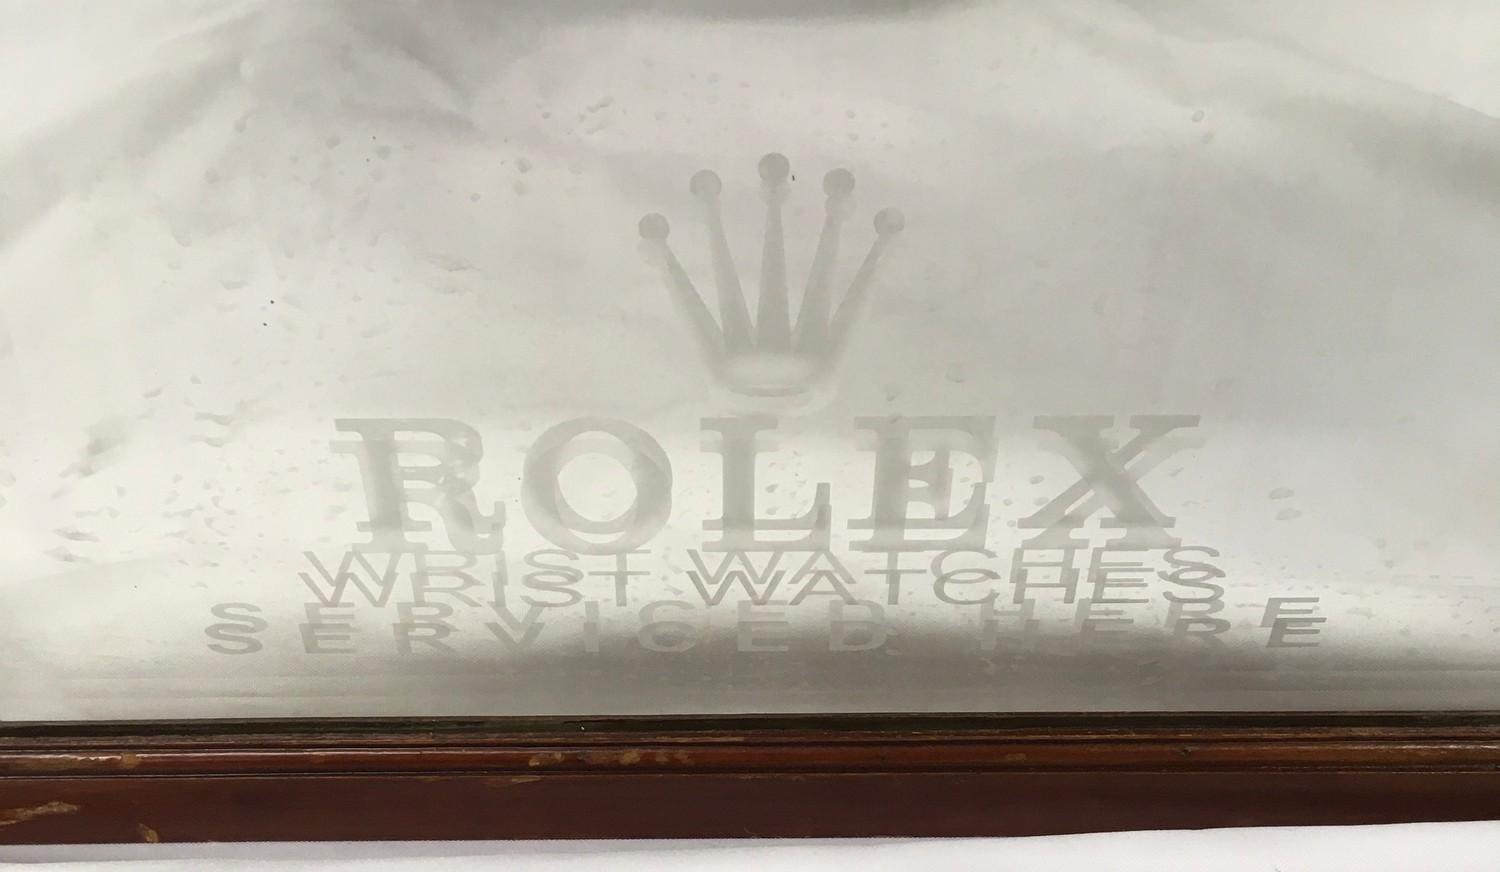 A wood framed and bevel edged mirror, etched Rolex. 80 cm by 53 cm - Image 2 of 2